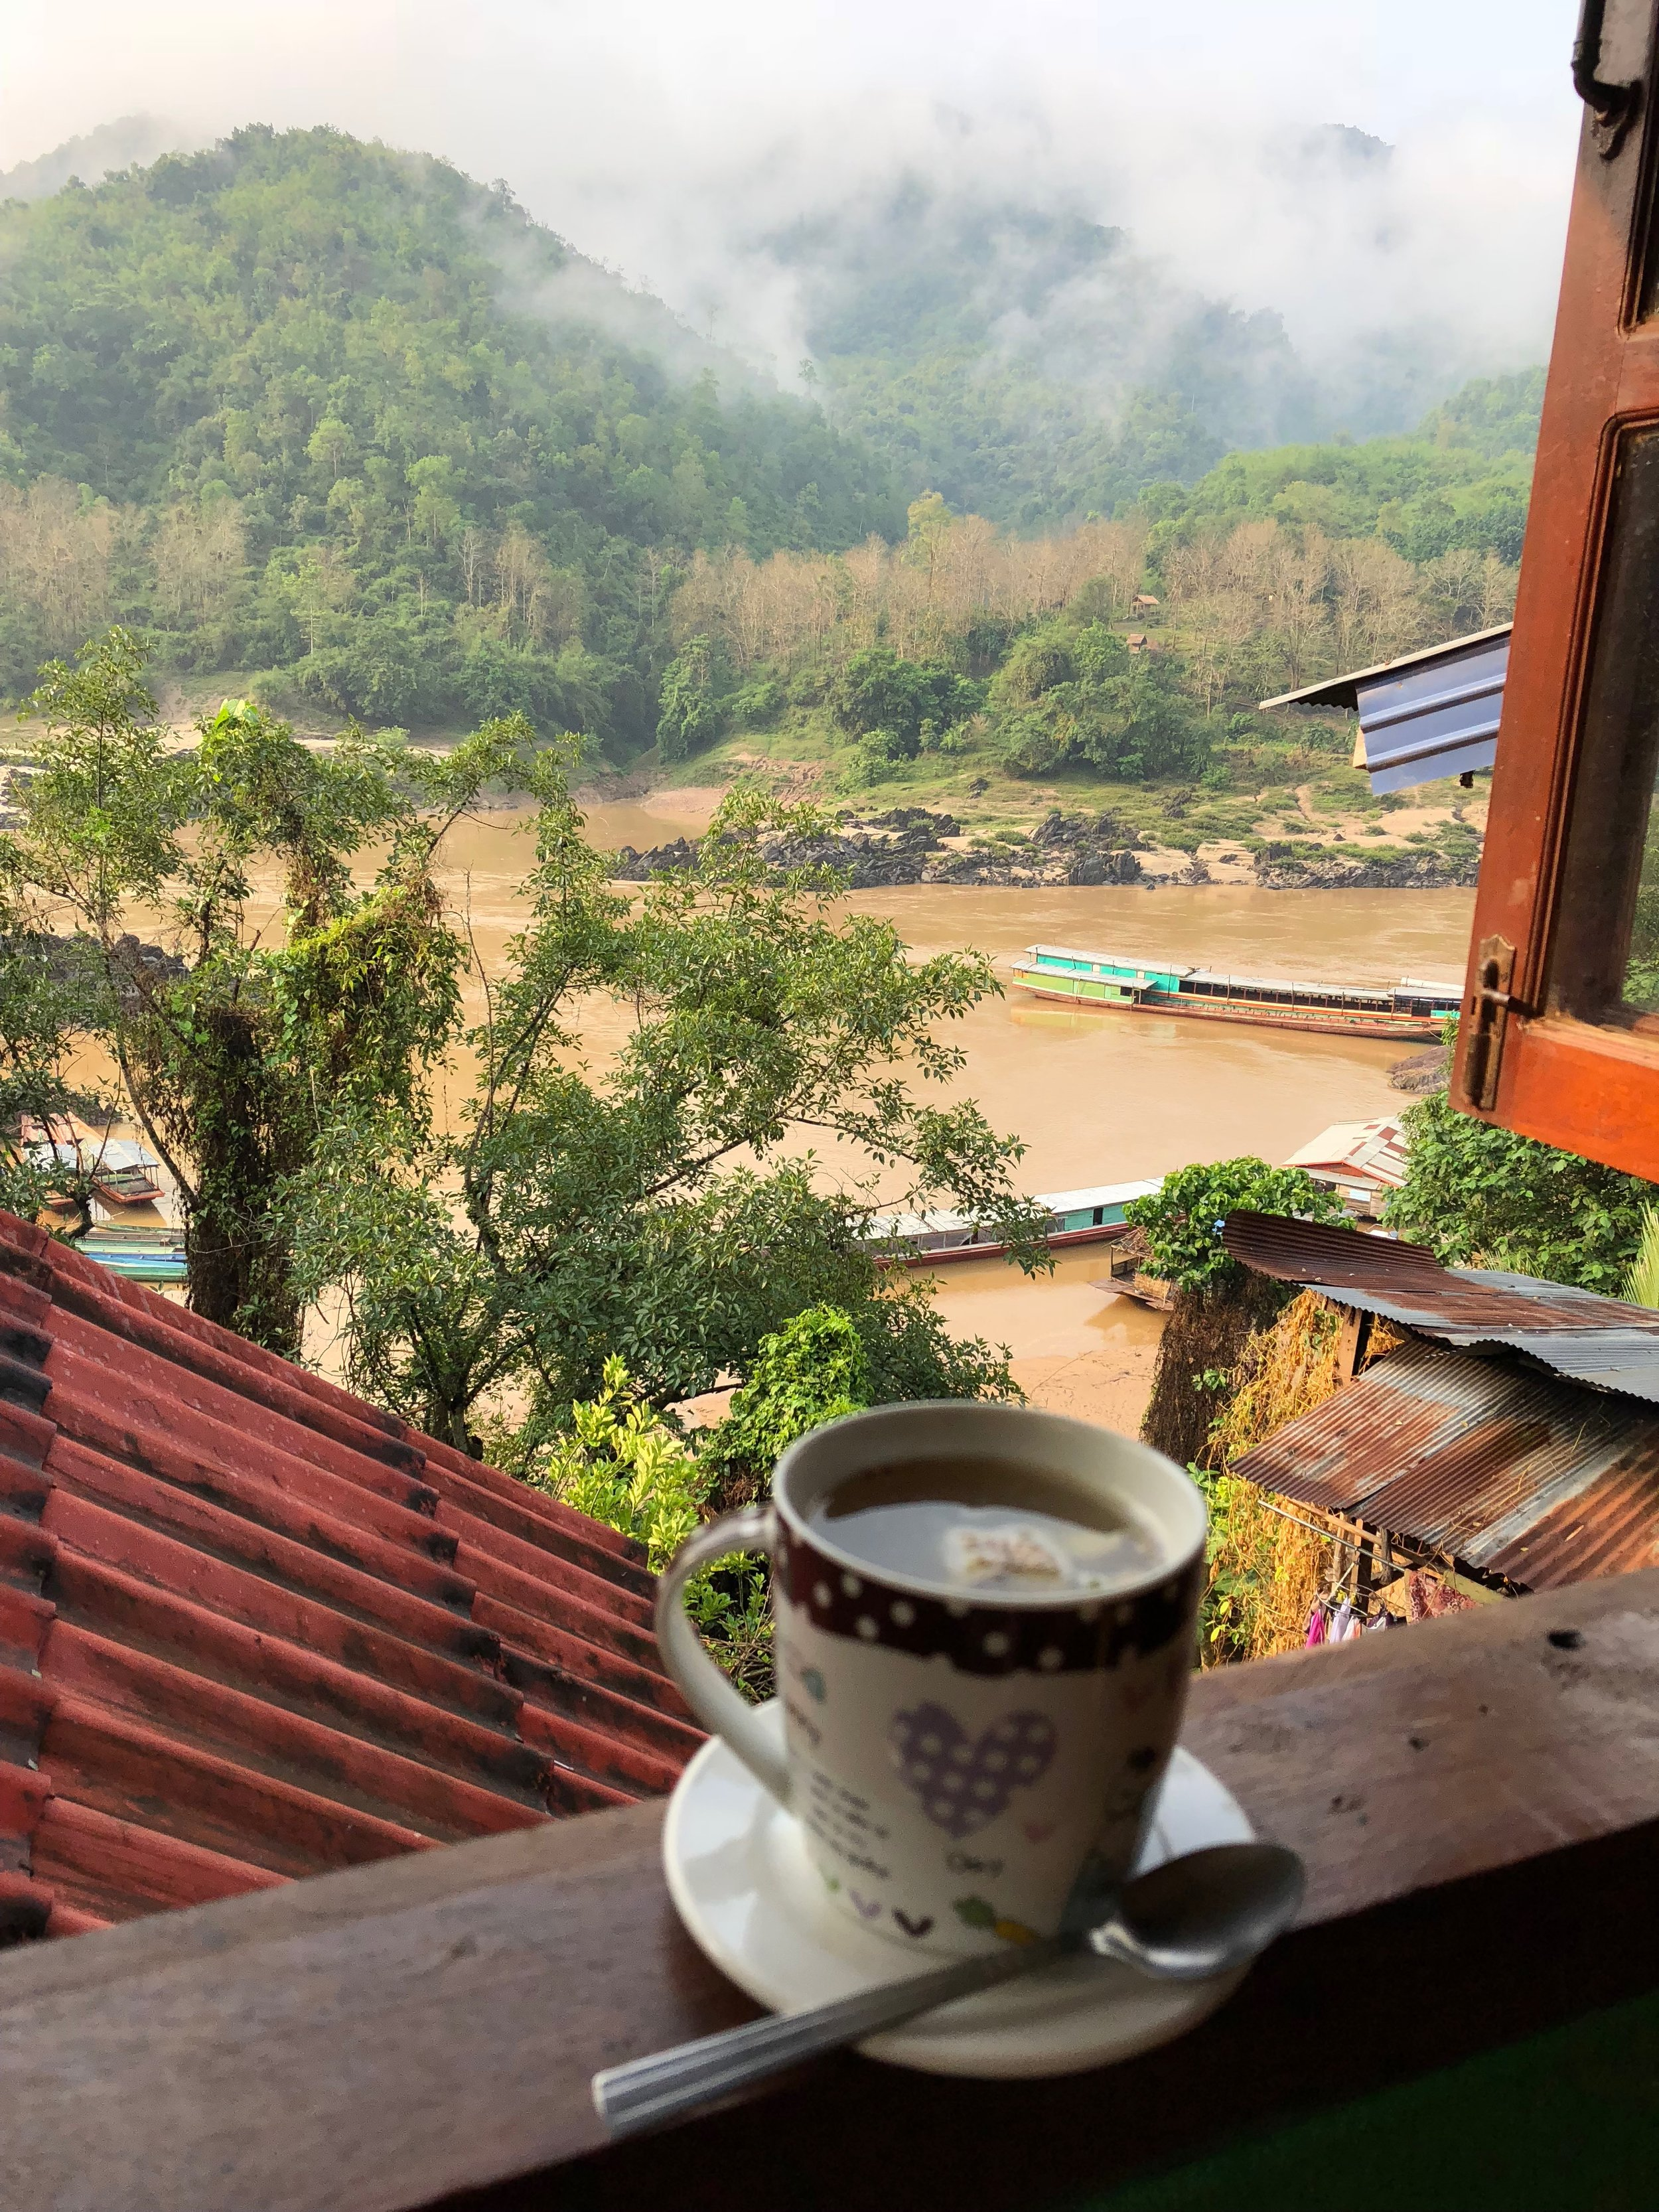 Breakfast with the view